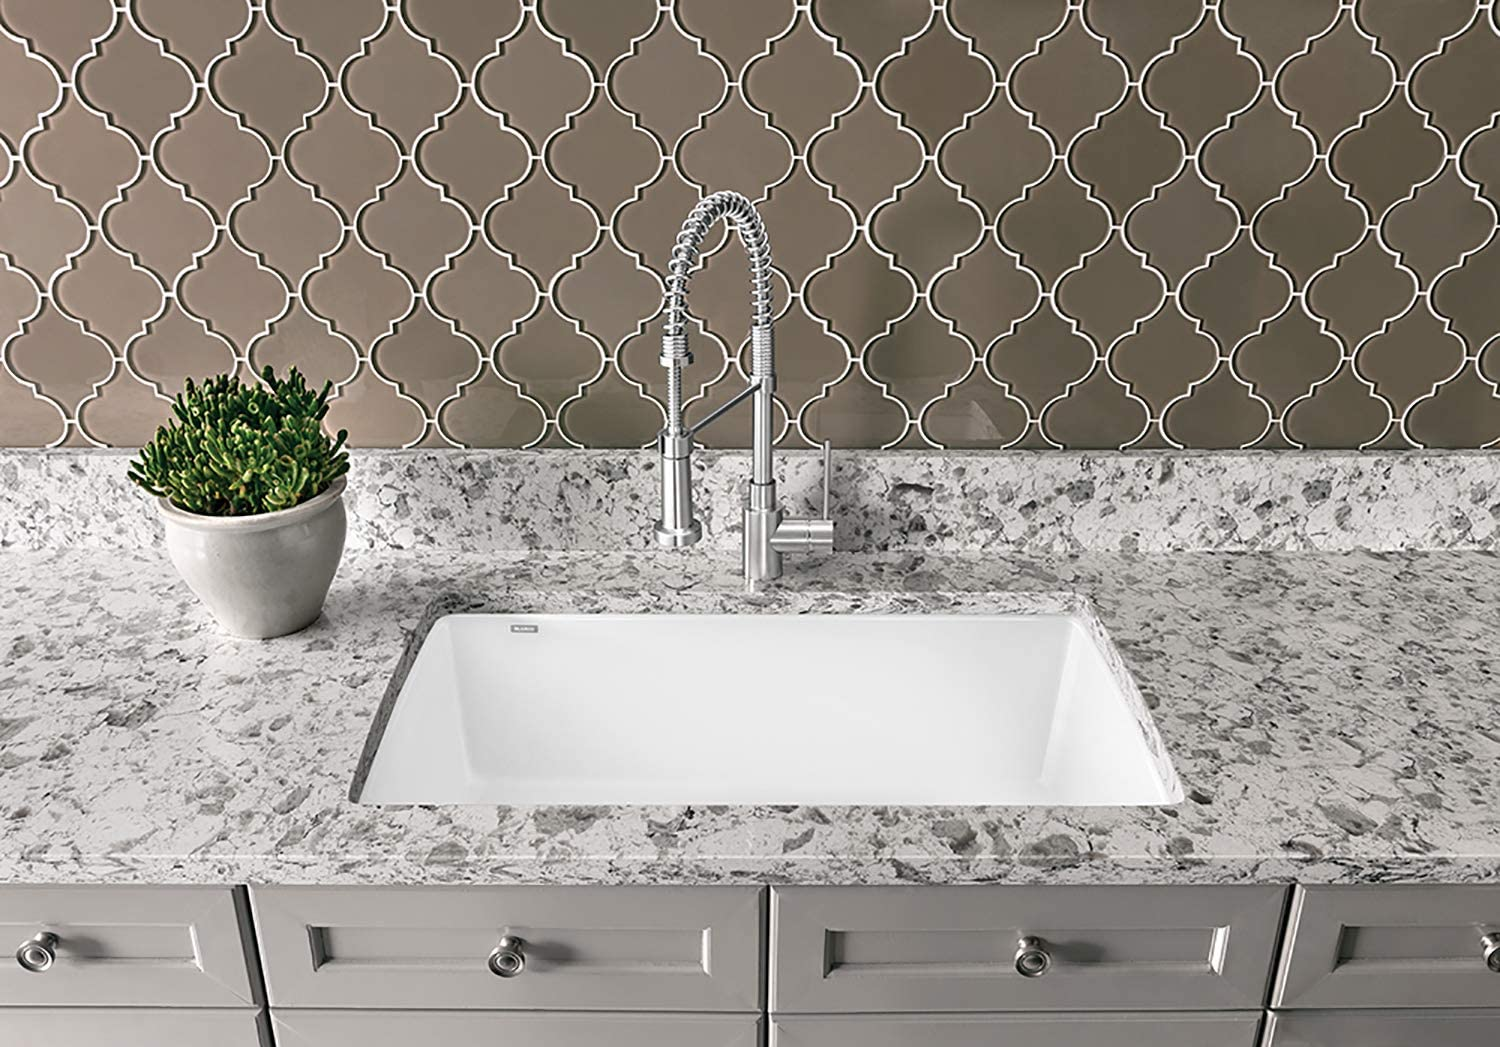 8 Best Blanco Sinks Reviews For Farmhouse Undermount More